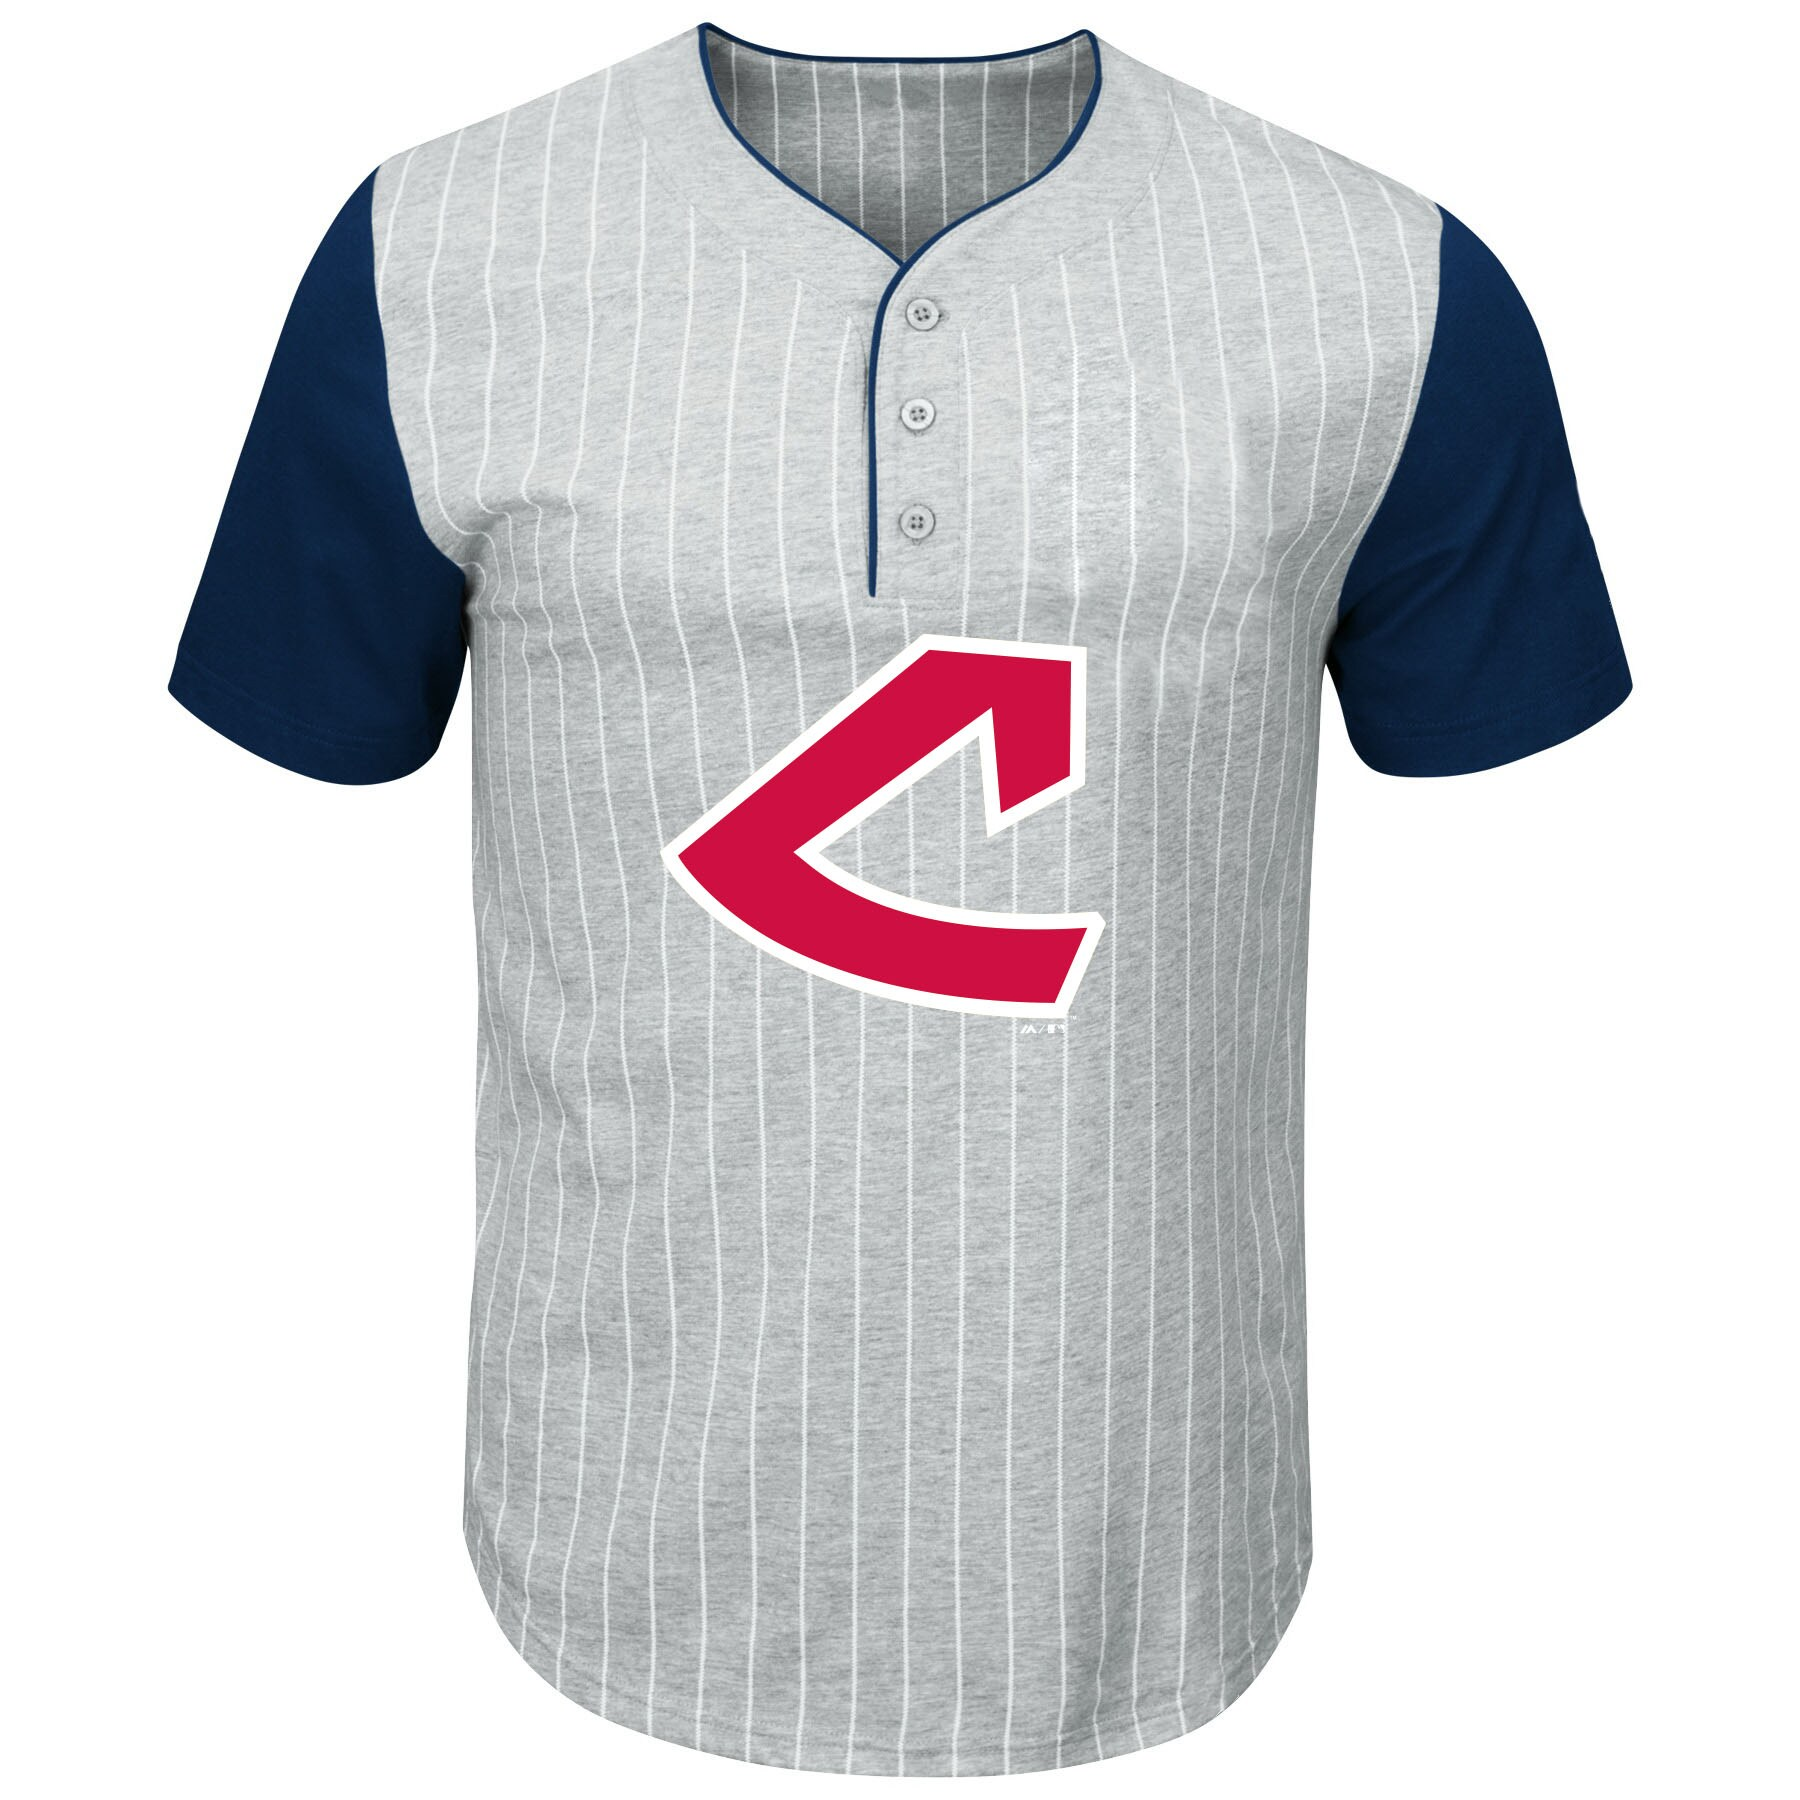 Cleveland Indians Majestic Big & Tall Cooperstown Collection Pinstripe Henley Raglan T-Shirt - Gray/Navy